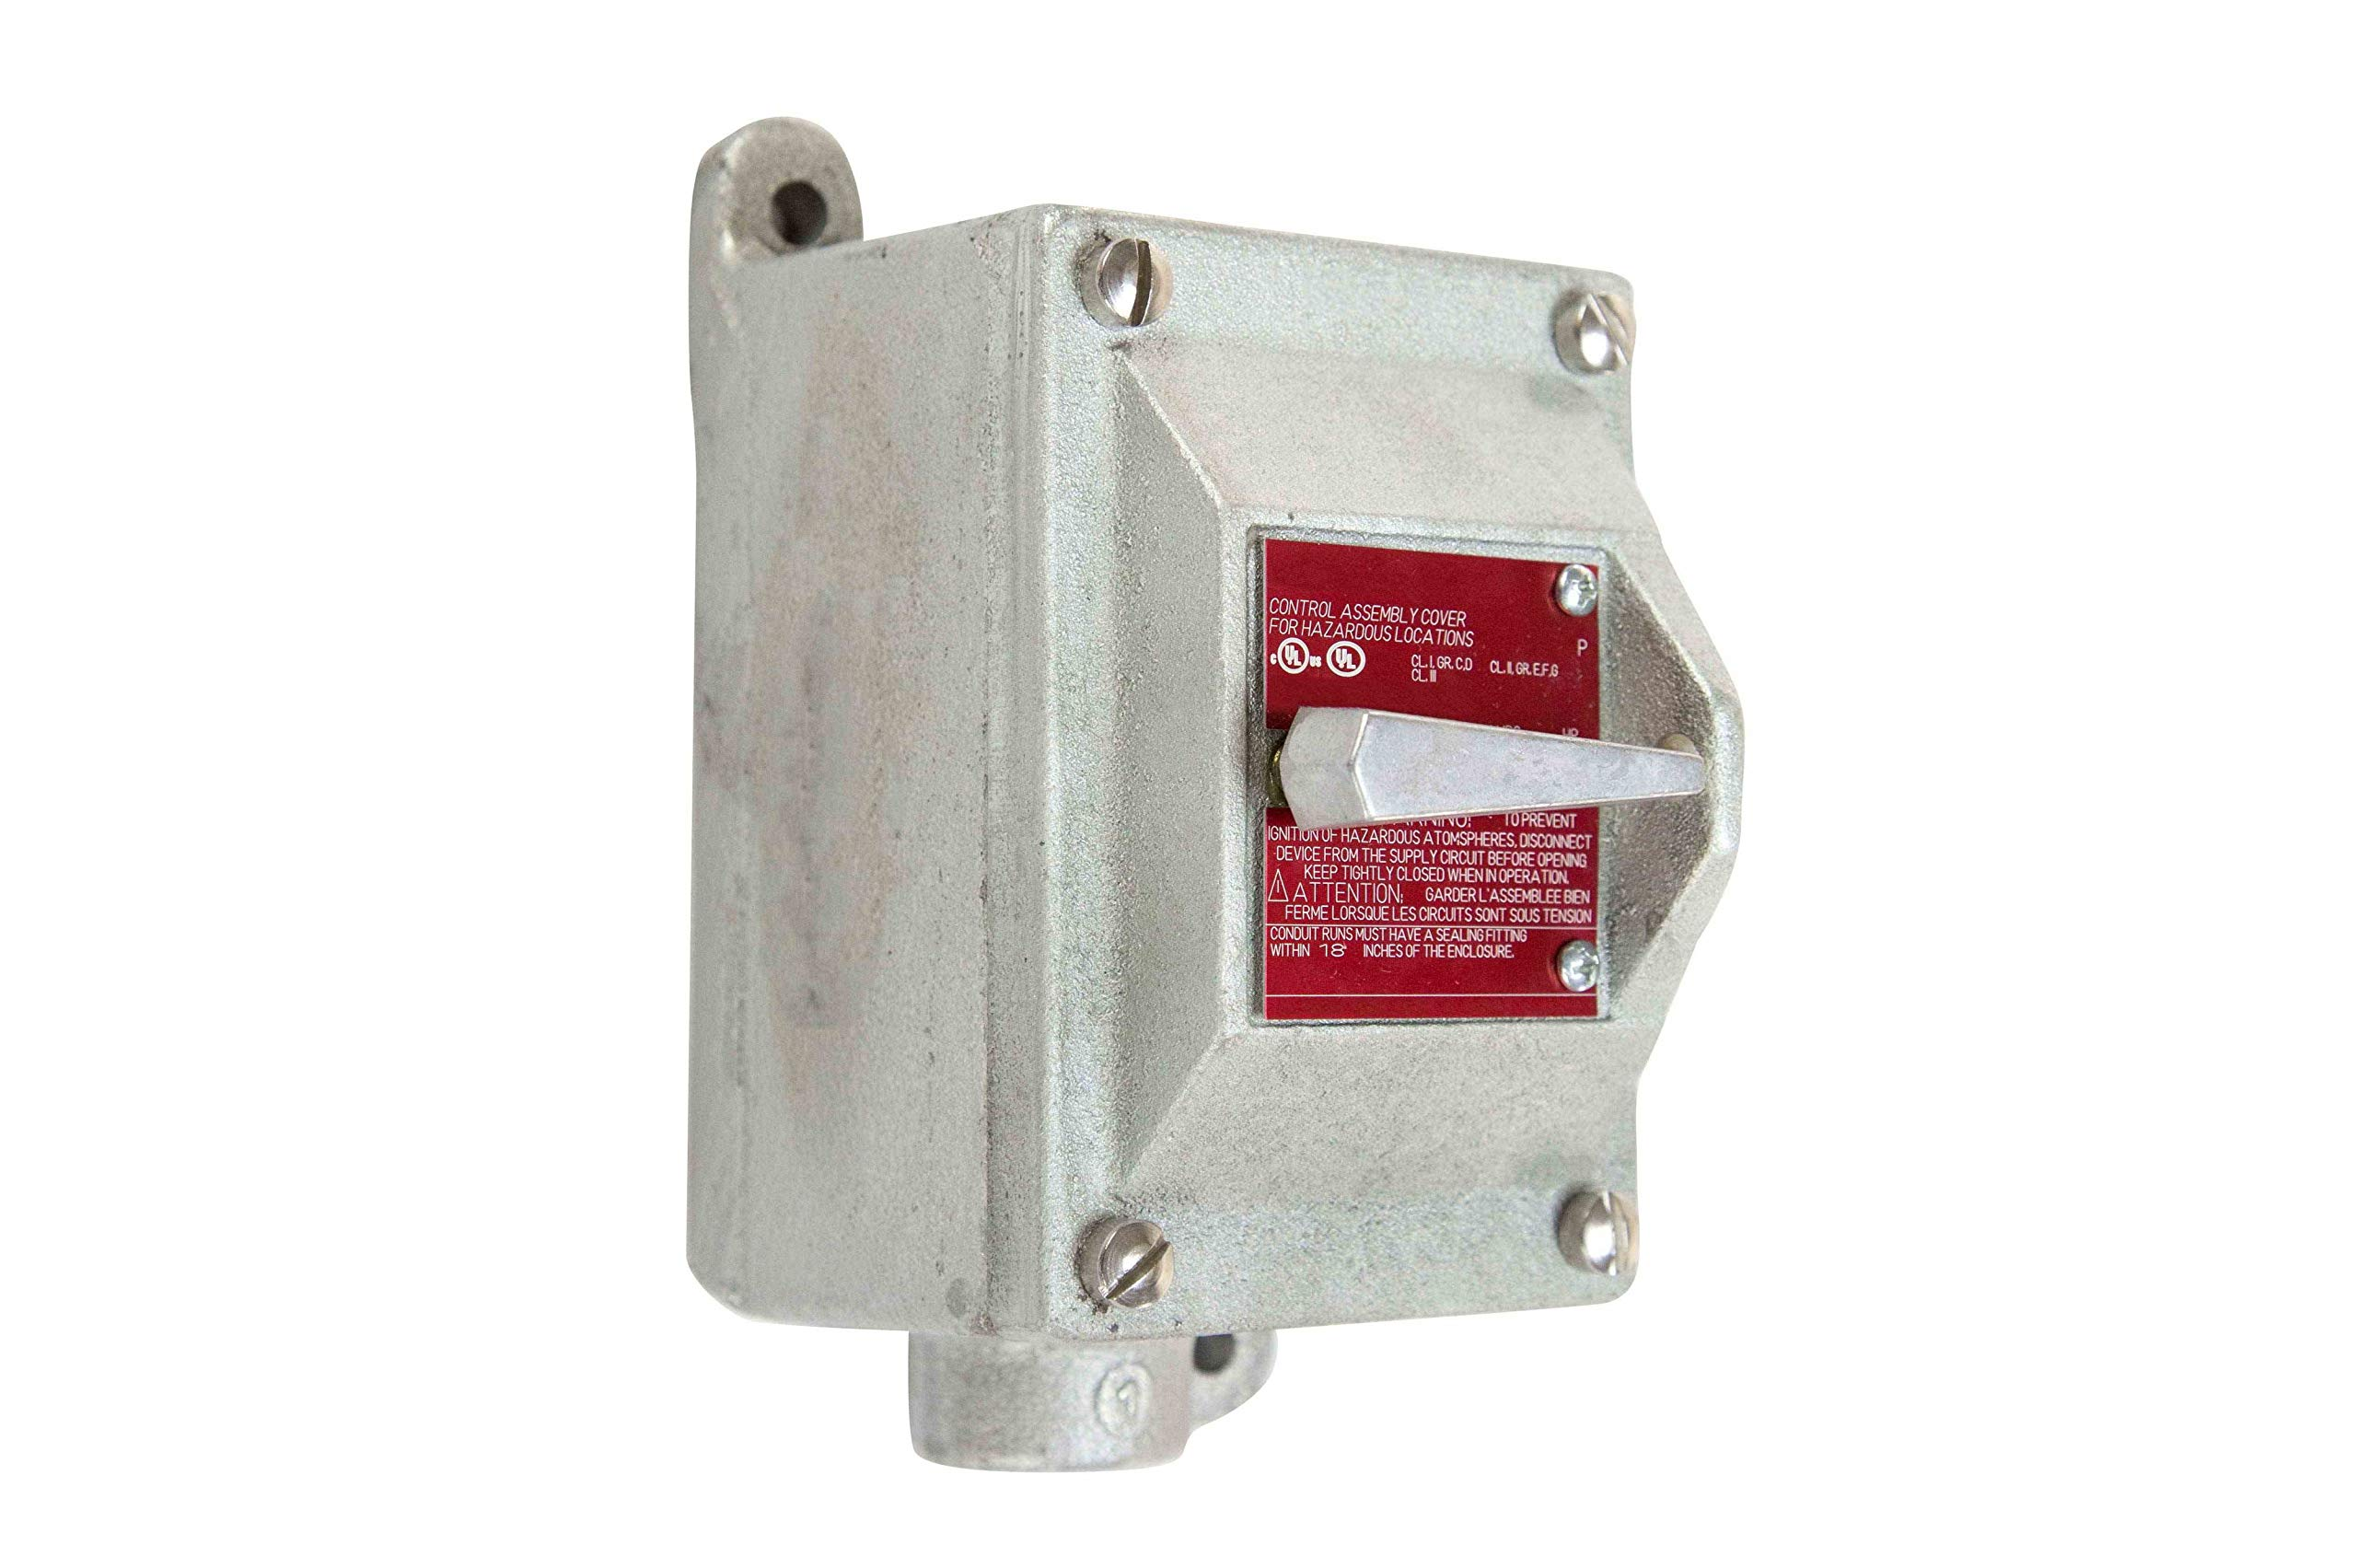 Explosion Proof Switch - Class 1 Div 1 and Class 2 Div 1 by Larson Electronics